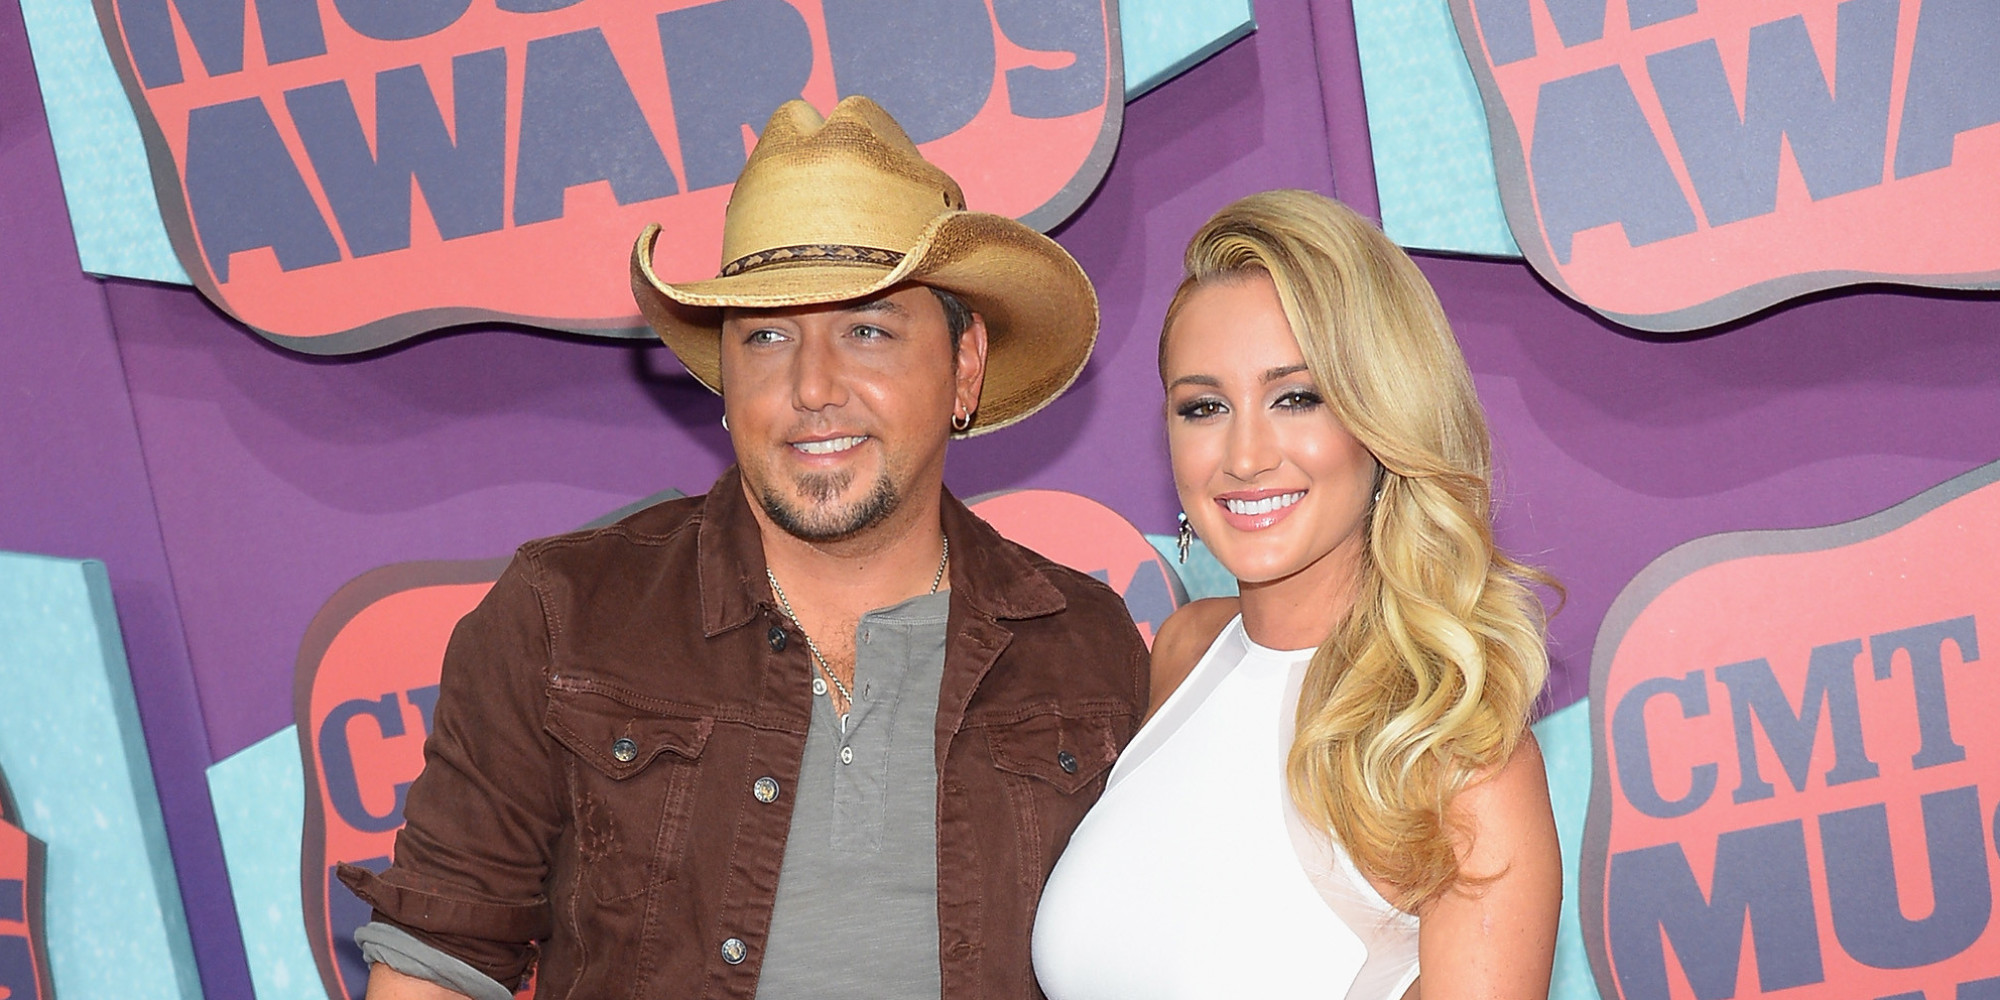 aldean dating kerr Jason aldean married former american idol contestant brittany kerr earlier this year although they endured scrutiny early on in their relationship because aldean was unfaithful to his wife when they first met, they seem to be enjoying newlywed bliss here is what you should about their relationship,.